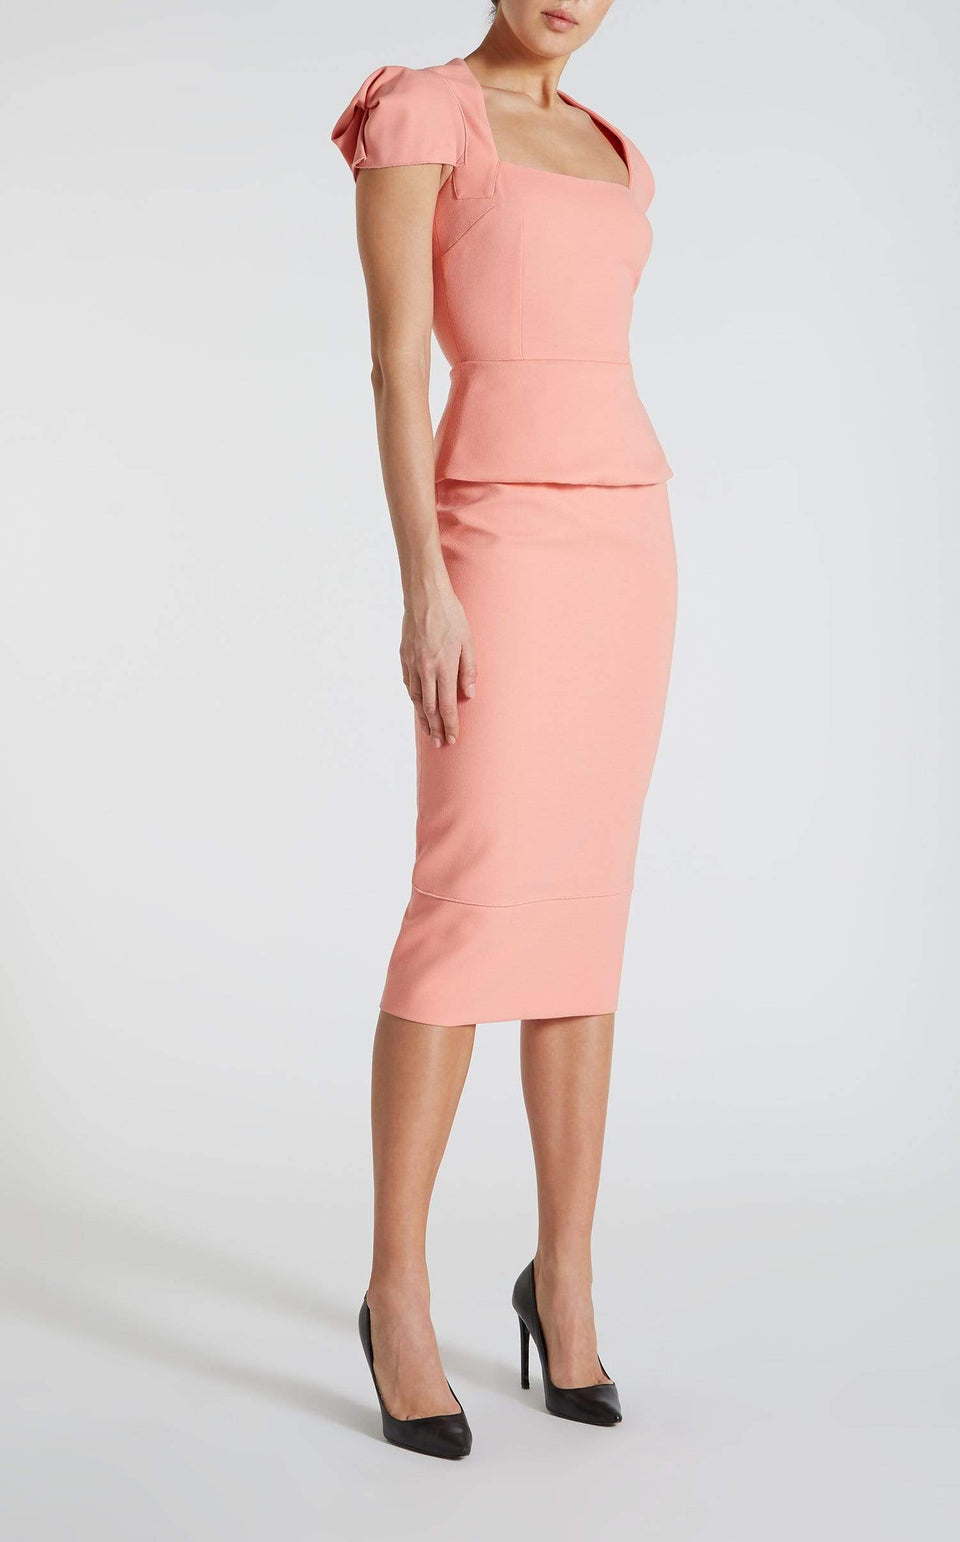 Galaxy Skirt In Antique Rose from Roland Mouret